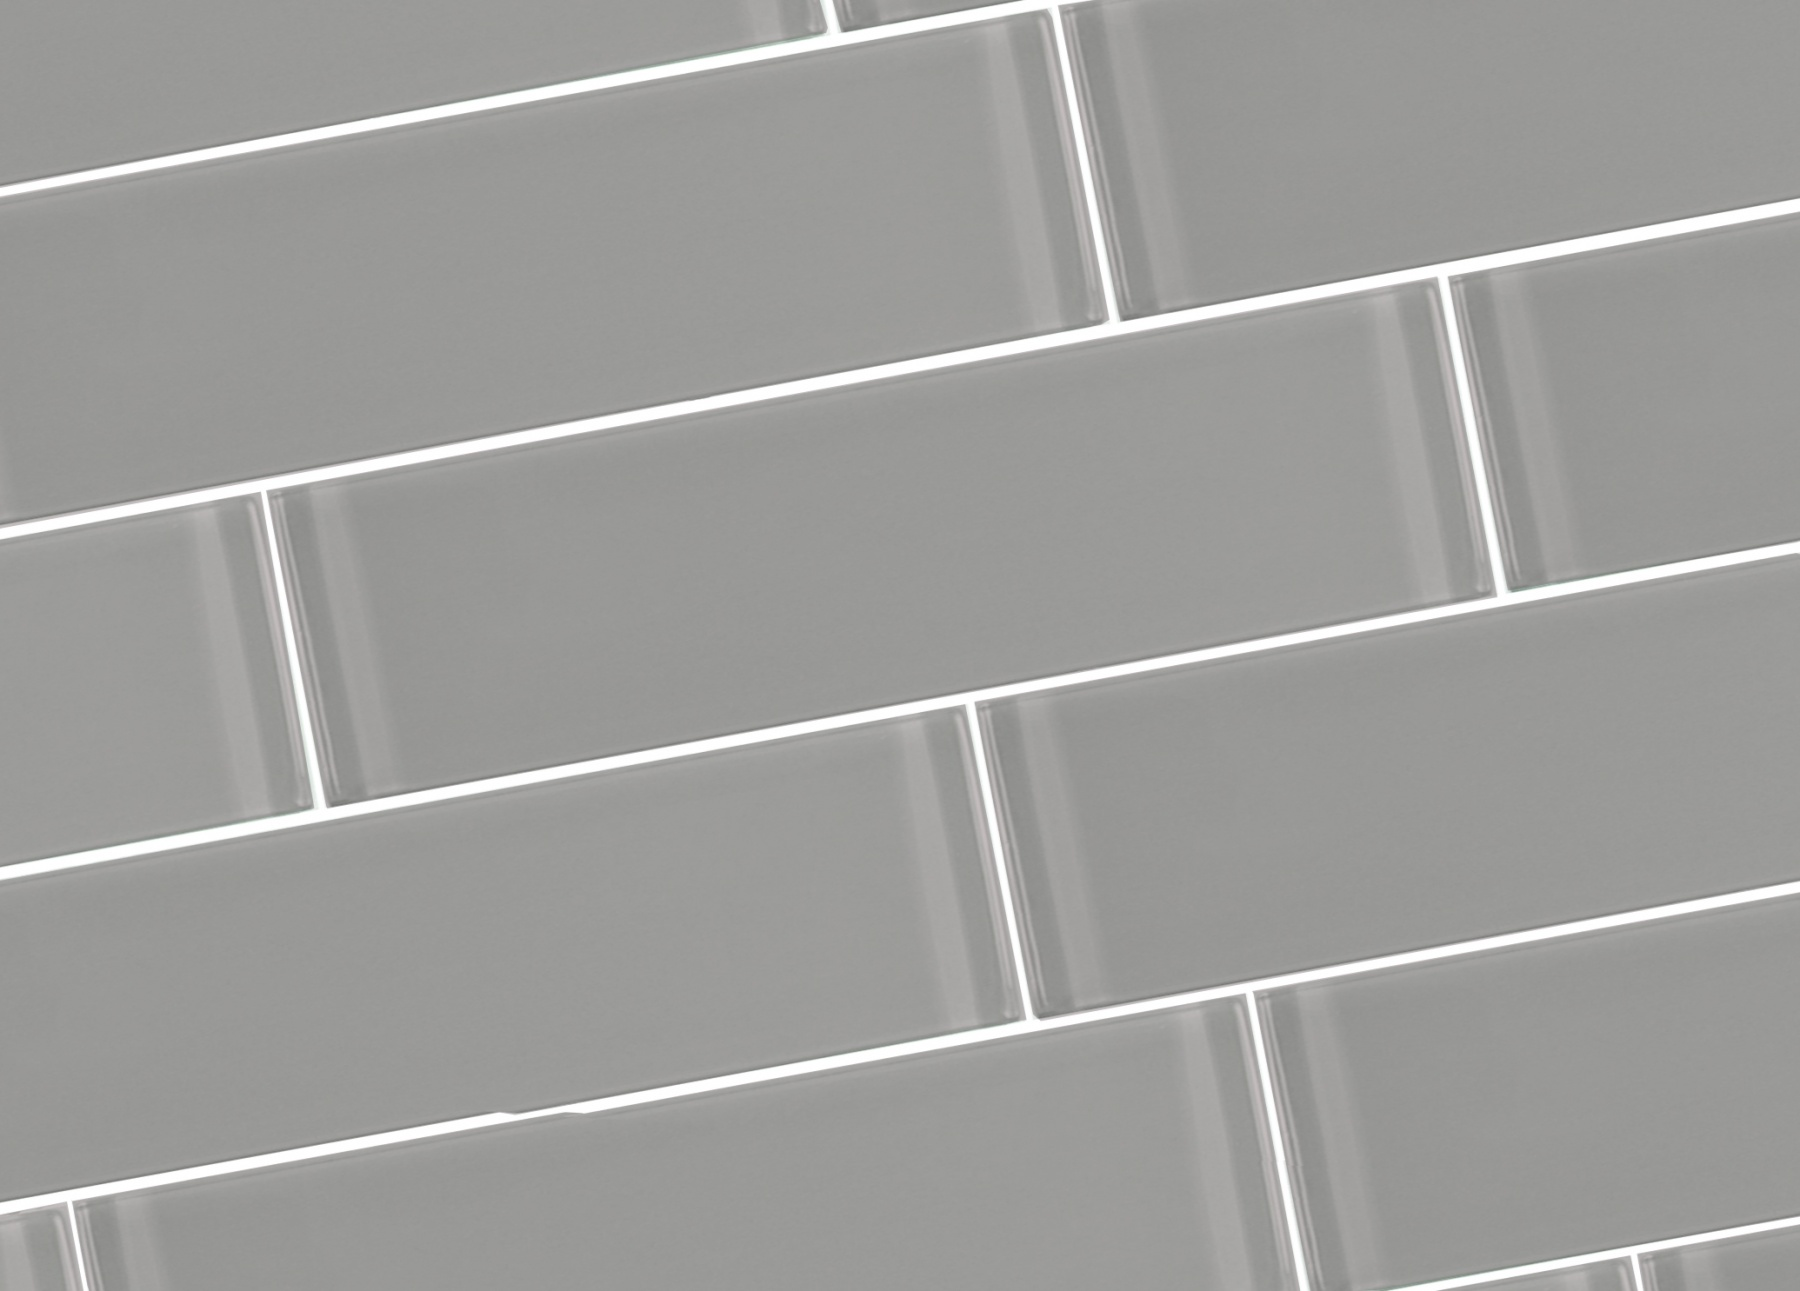 Metro 3 In X 12 In Glass Subway Tile In Pebble Glossy